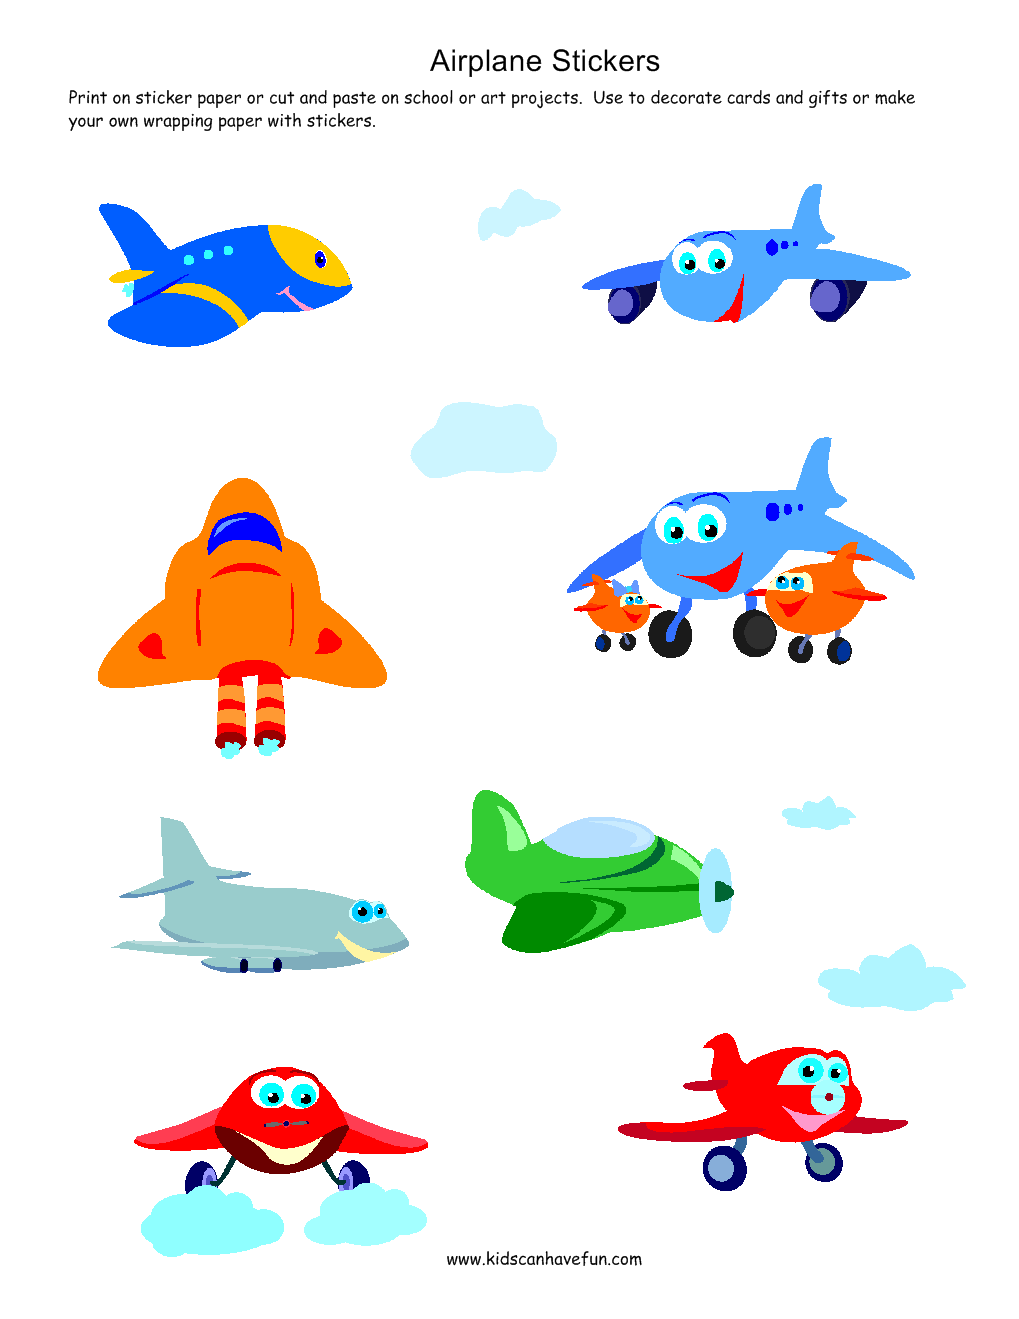 Airplane Stickers Printable Stickers Printable Sticker Sheets